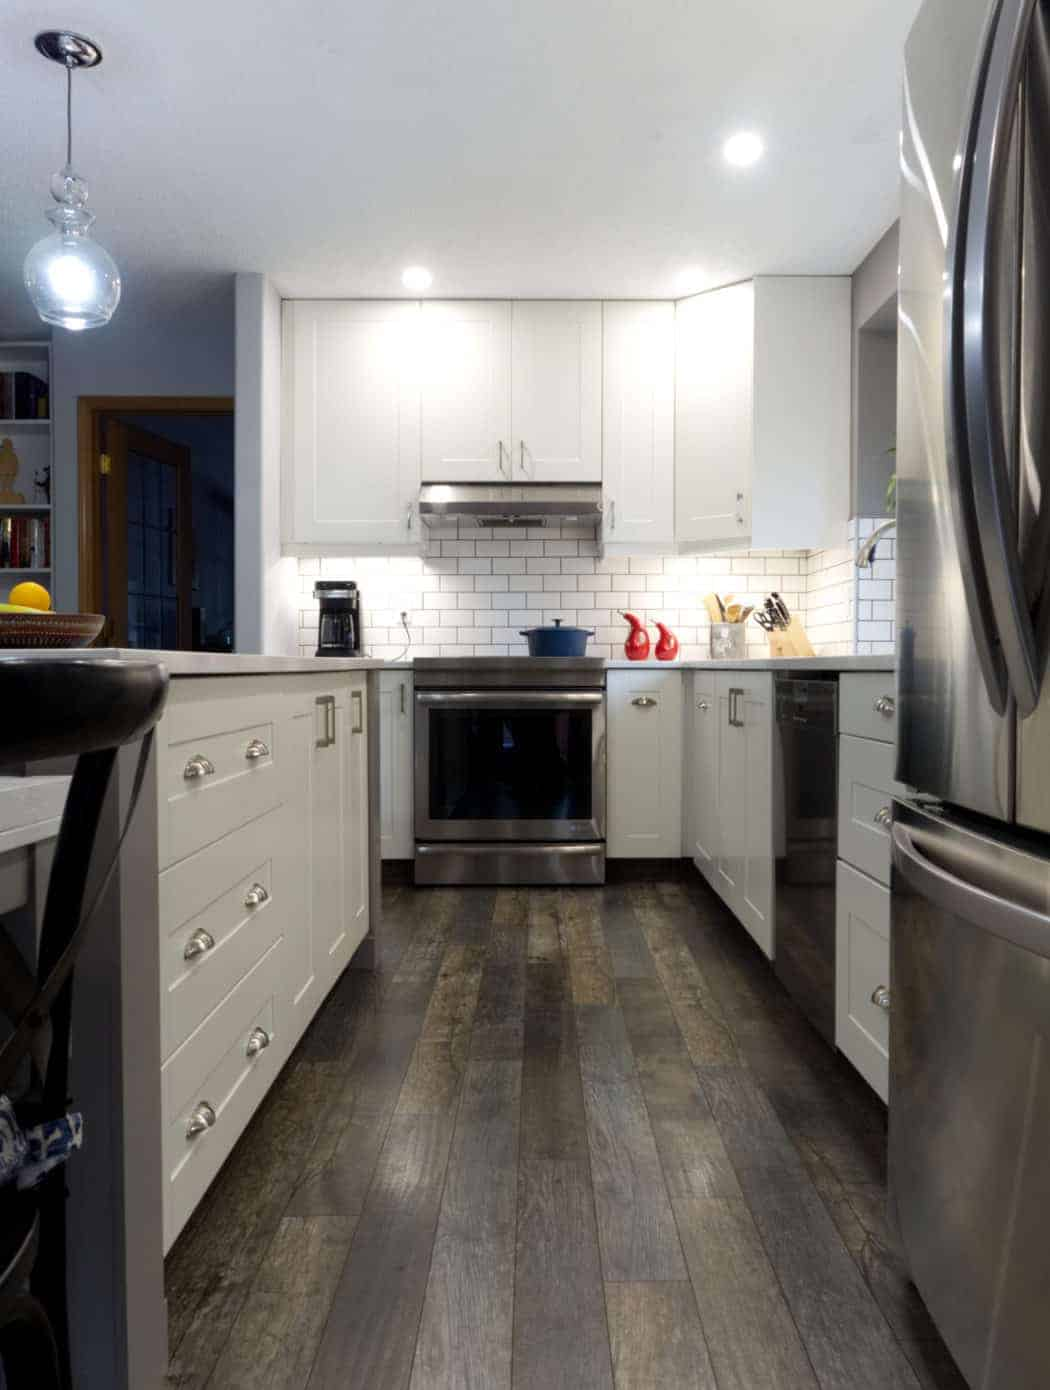 IKEA Kitchen review: Pros, cons, and overall quality - THE ...